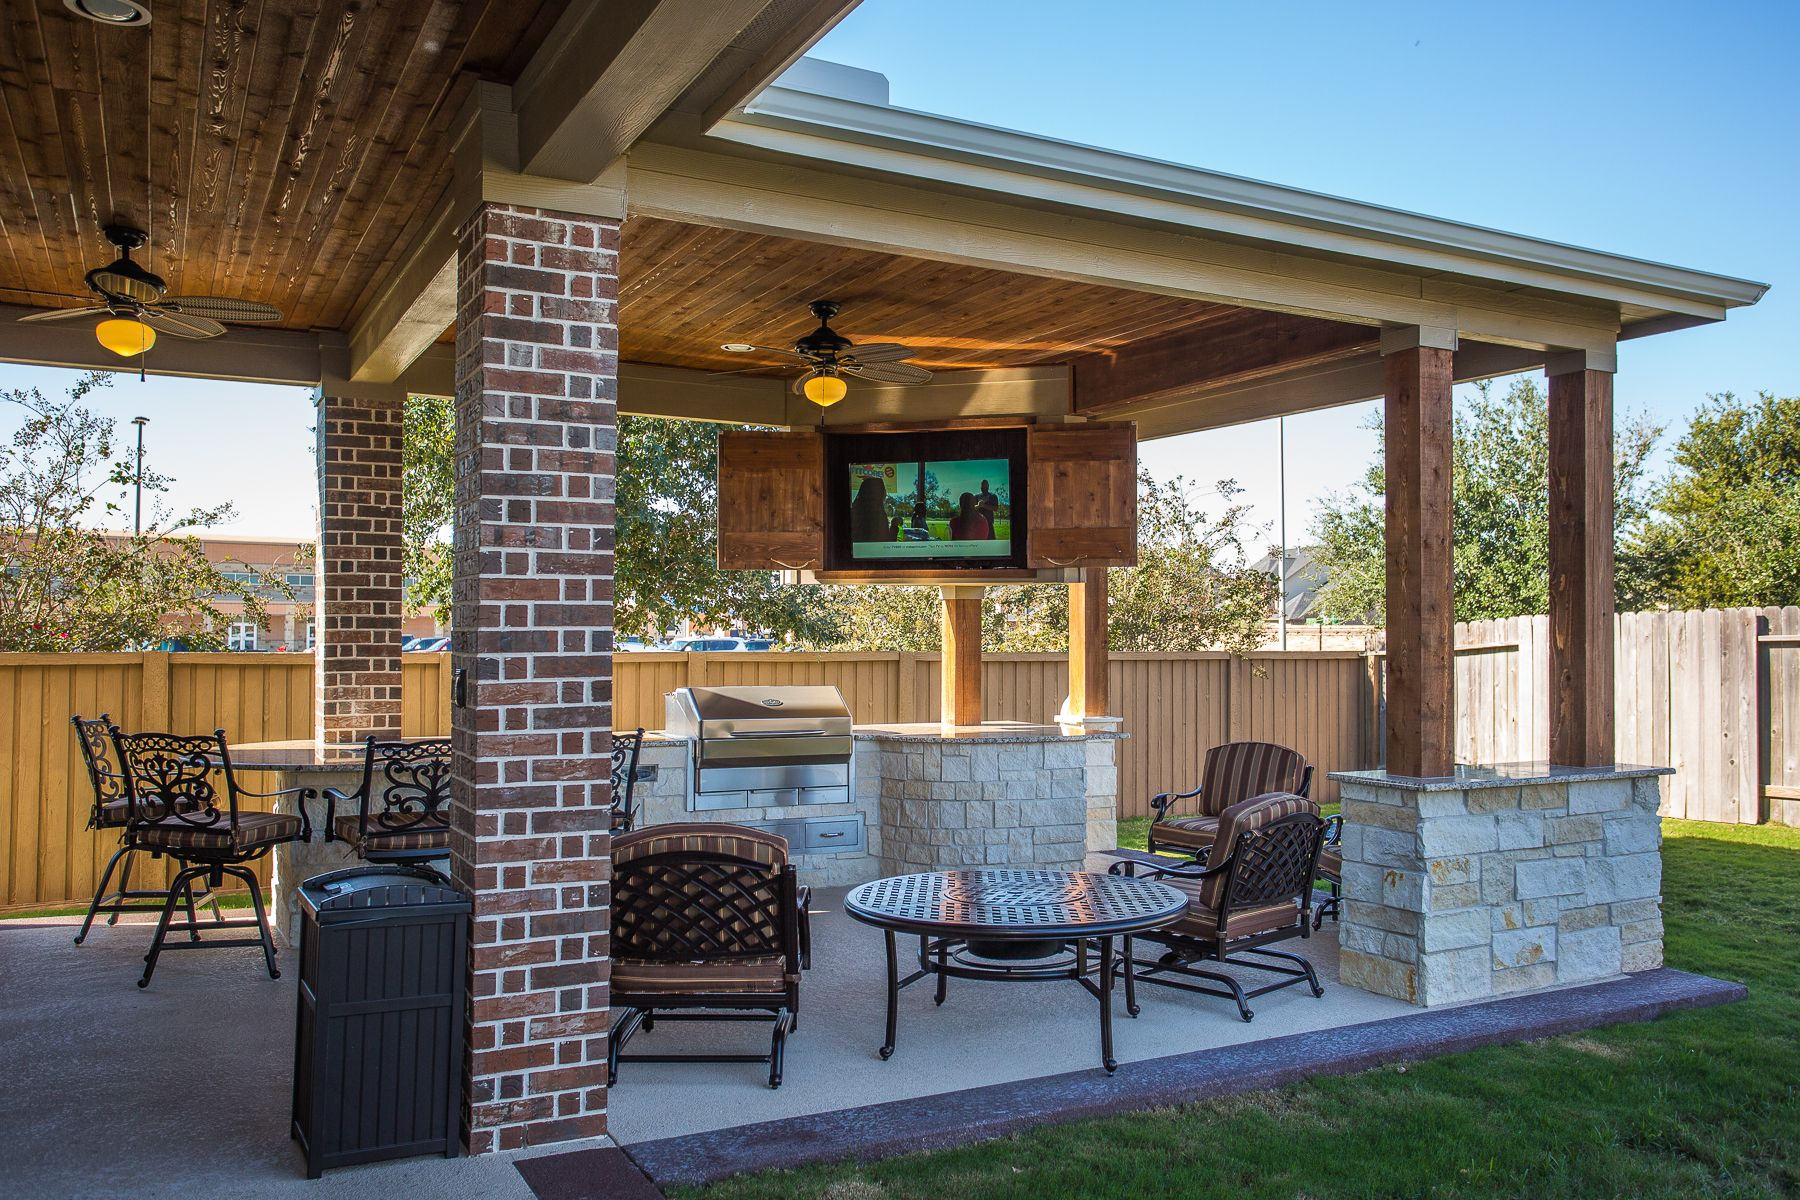 Custom Outdoor Covered Patio Such A Unique Piece! Tongue And Groove  Ceiling, Custom Cabinets To Hide The Outdoor Television, Cozy Patio  Furniture, ...